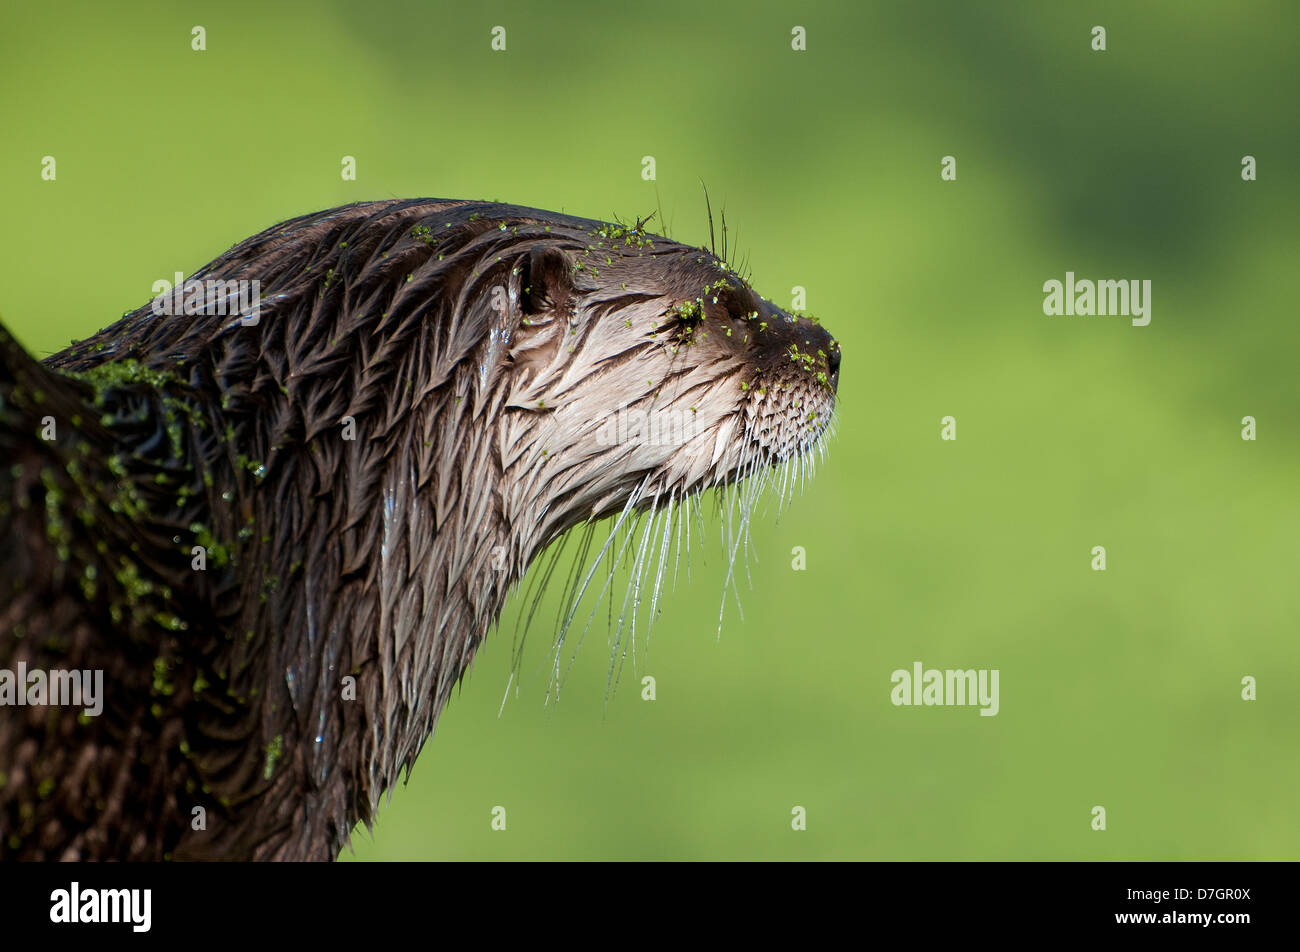 american river otter - Stock Image